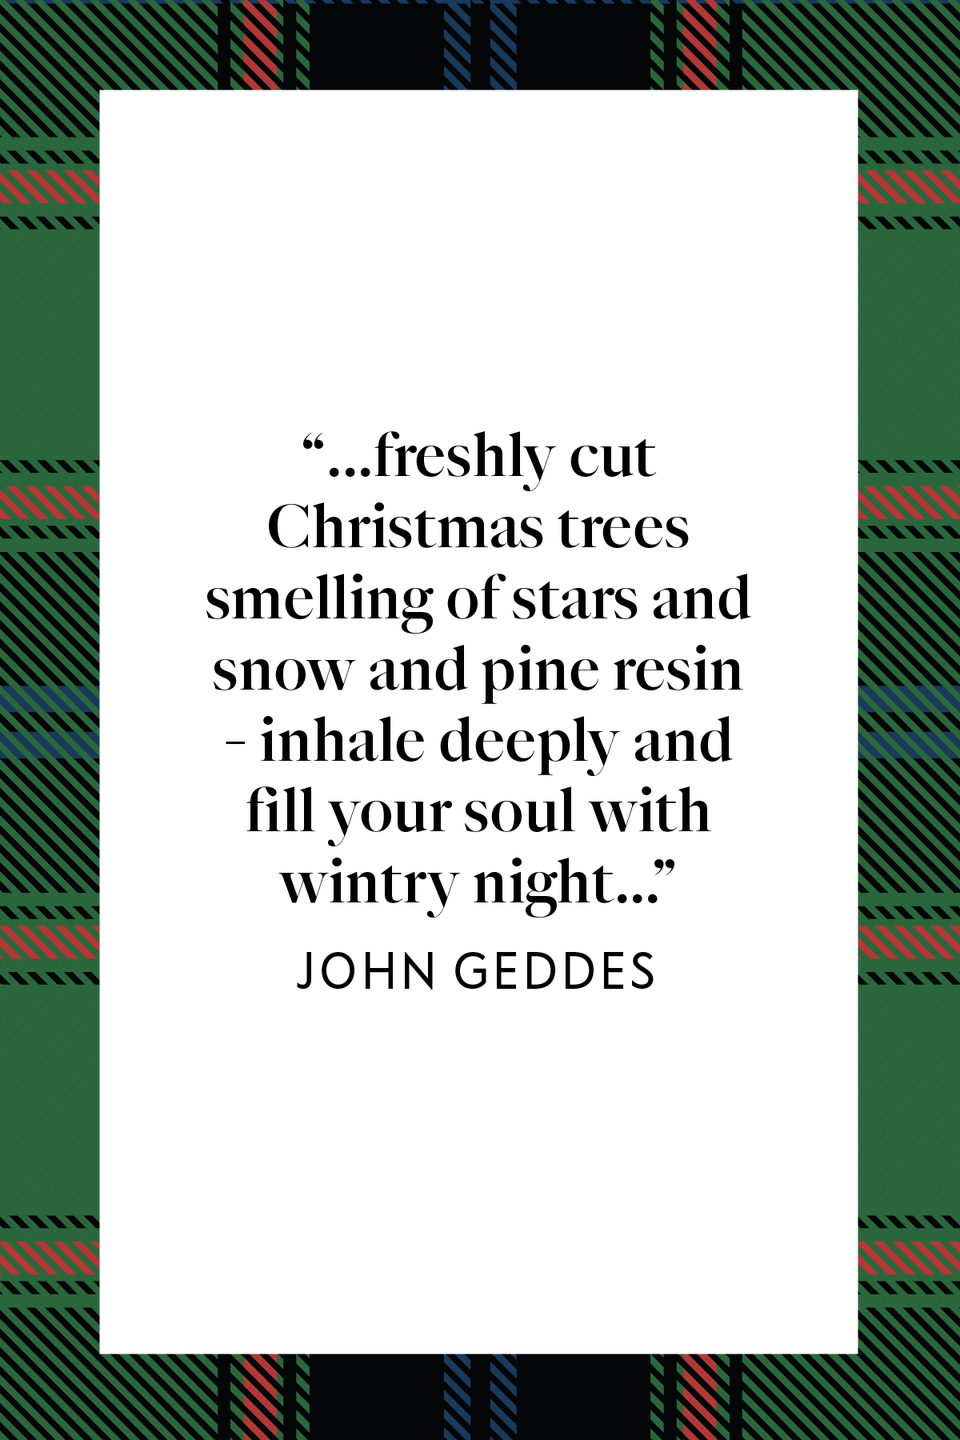 "<p><em>New York Times</em> journalist John Geddes wrote ""...freshly cut Christmas trees smelling of stars and snow and pine resin - inhale deeply and fill your soul with wintry night..."" in his book, <a href=""https://www.amazon.com/Familiar-Rain-John-Geddes/dp/0983504407?tag=syn-yahoo-20&ascsubtag=%5Bartid%7C10072.g.34536312%5Bsrc%7Cyahoo-us"" rel=""nofollow noopener"" target=""_blank"" data-ylk=""slk:A Familiar Rain."" class=""link rapid-noclick-resp""><em>A Familiar Rain</em>.</a></p>"